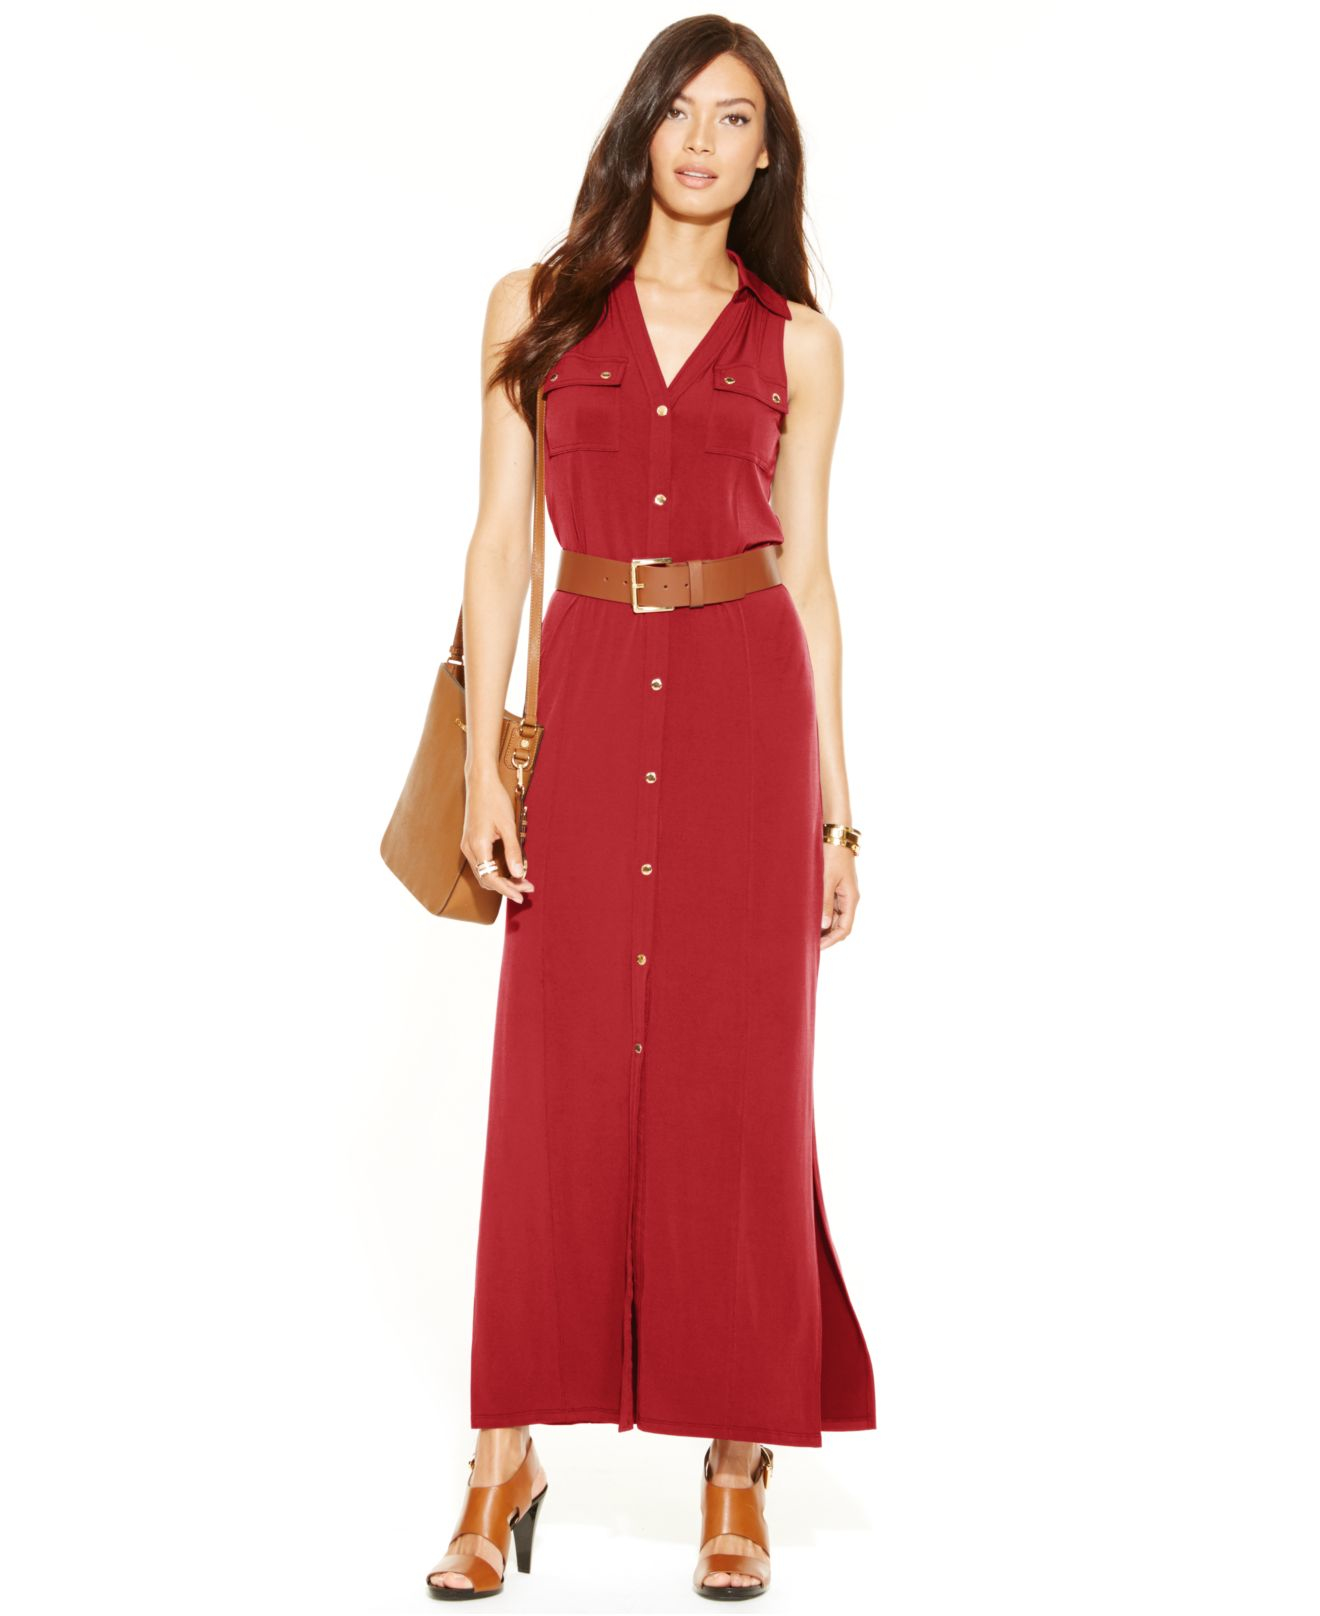 Michael kors Michael Petite Belted Maxi Shirt Dress in Red - Lyst